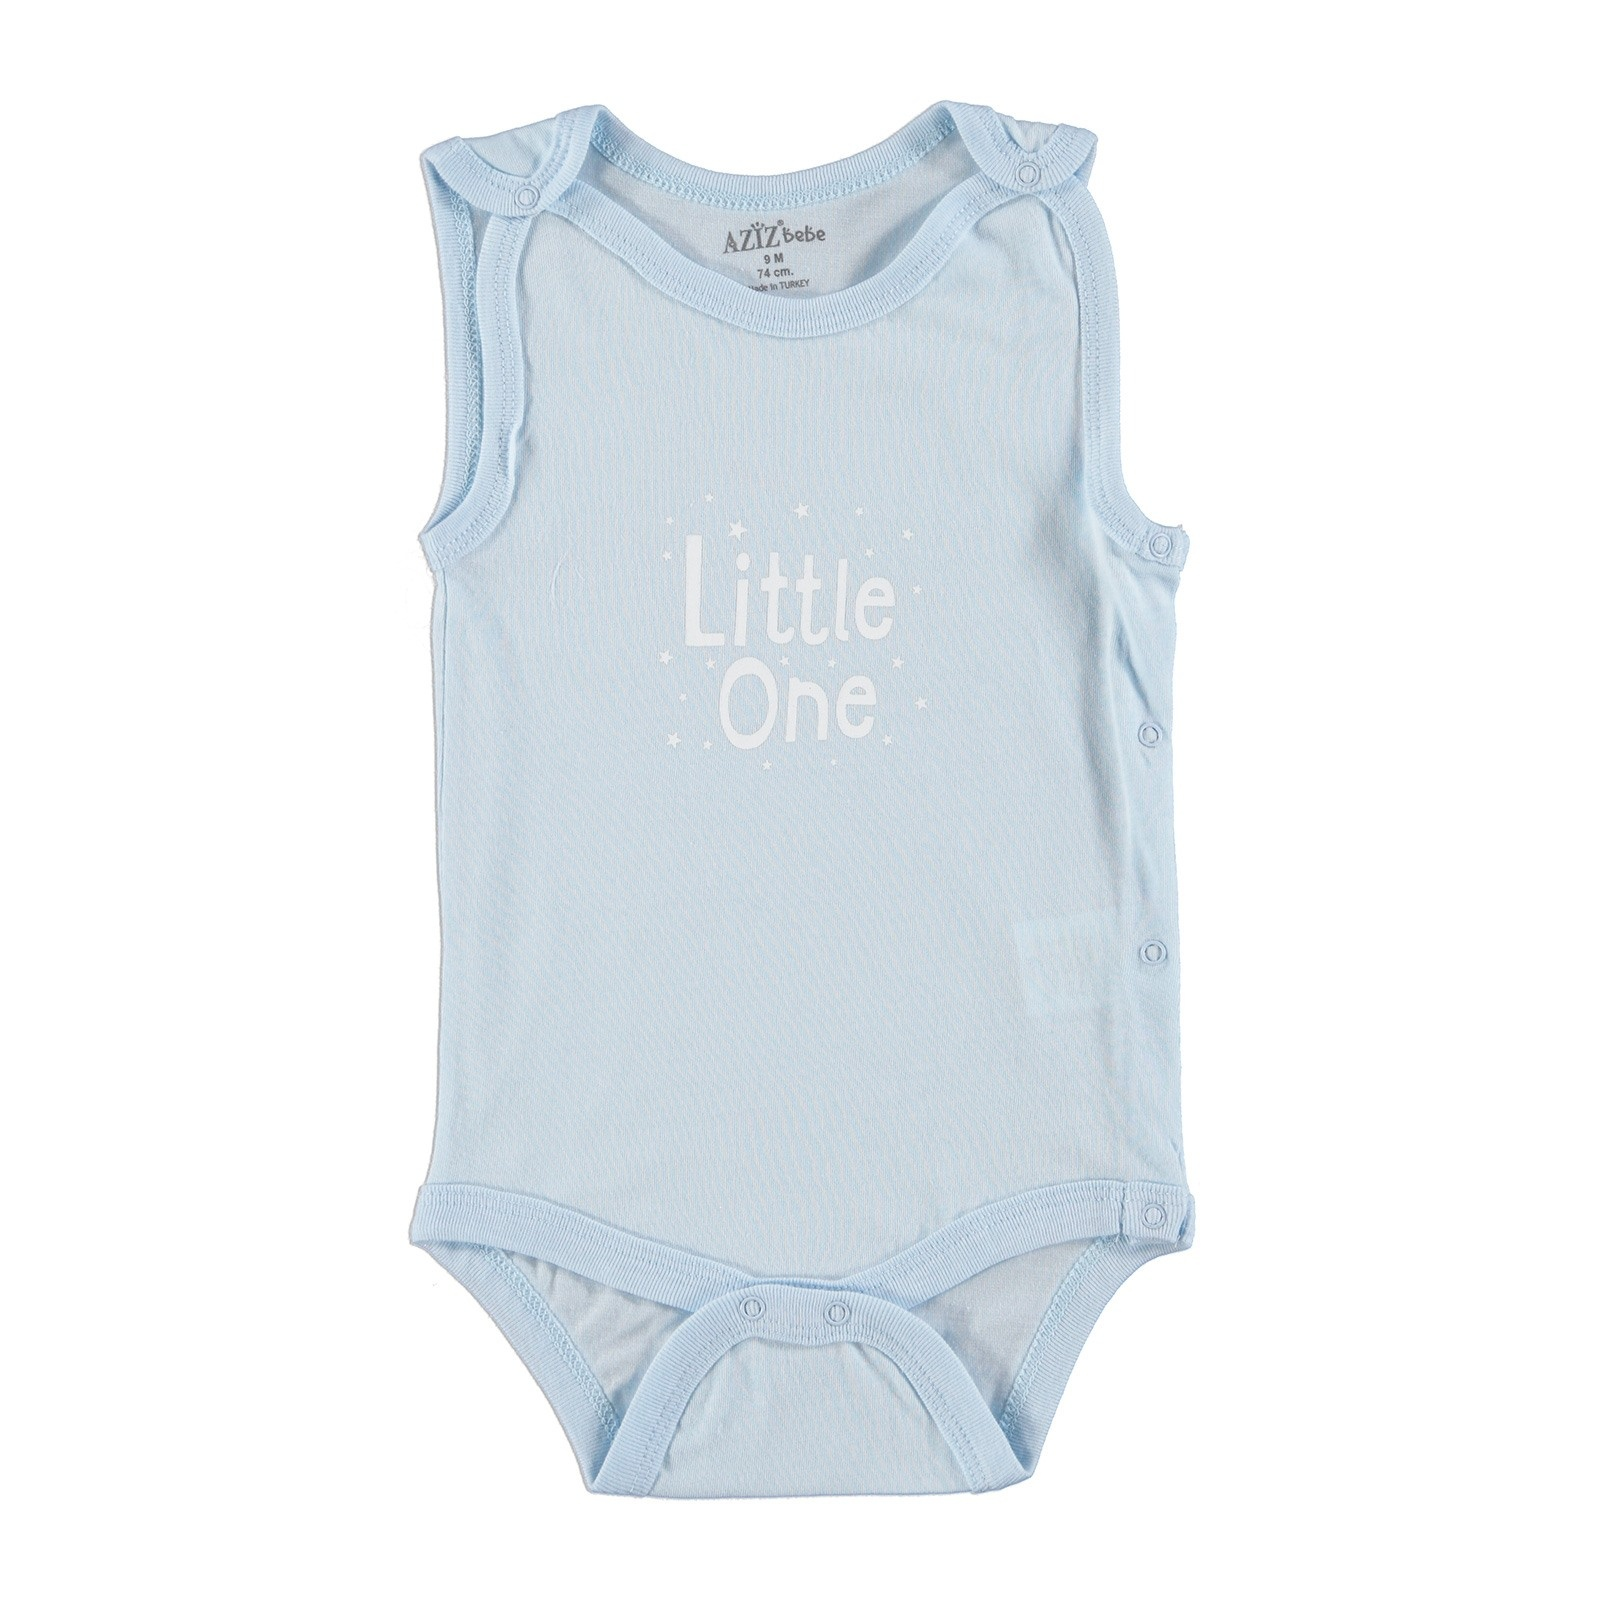 Ebebek Aziz Bebe Baby Girls & Boys Summer Short Sleeve Bodysuit